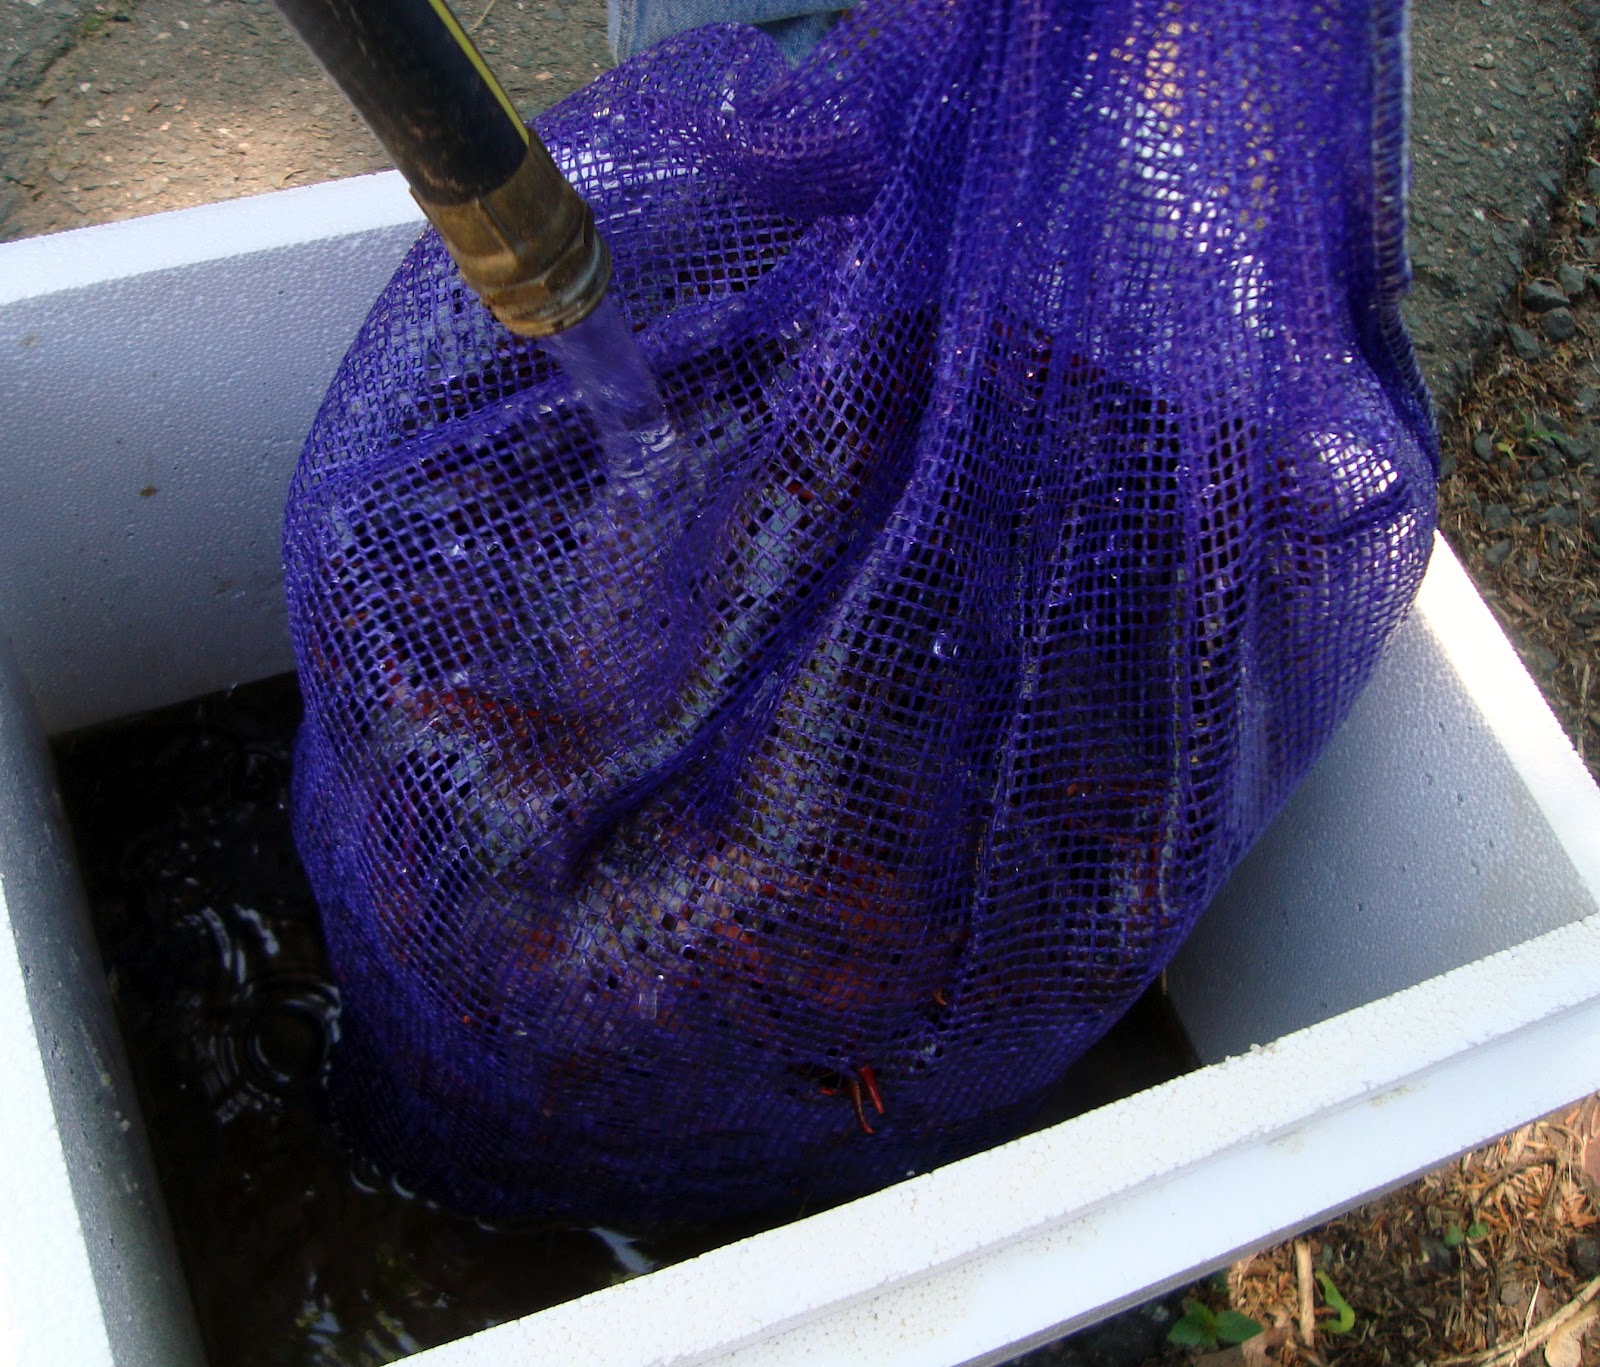 Here Is Our Process, Which Was For 15 Pounds Of Live Crawfish A Couple In